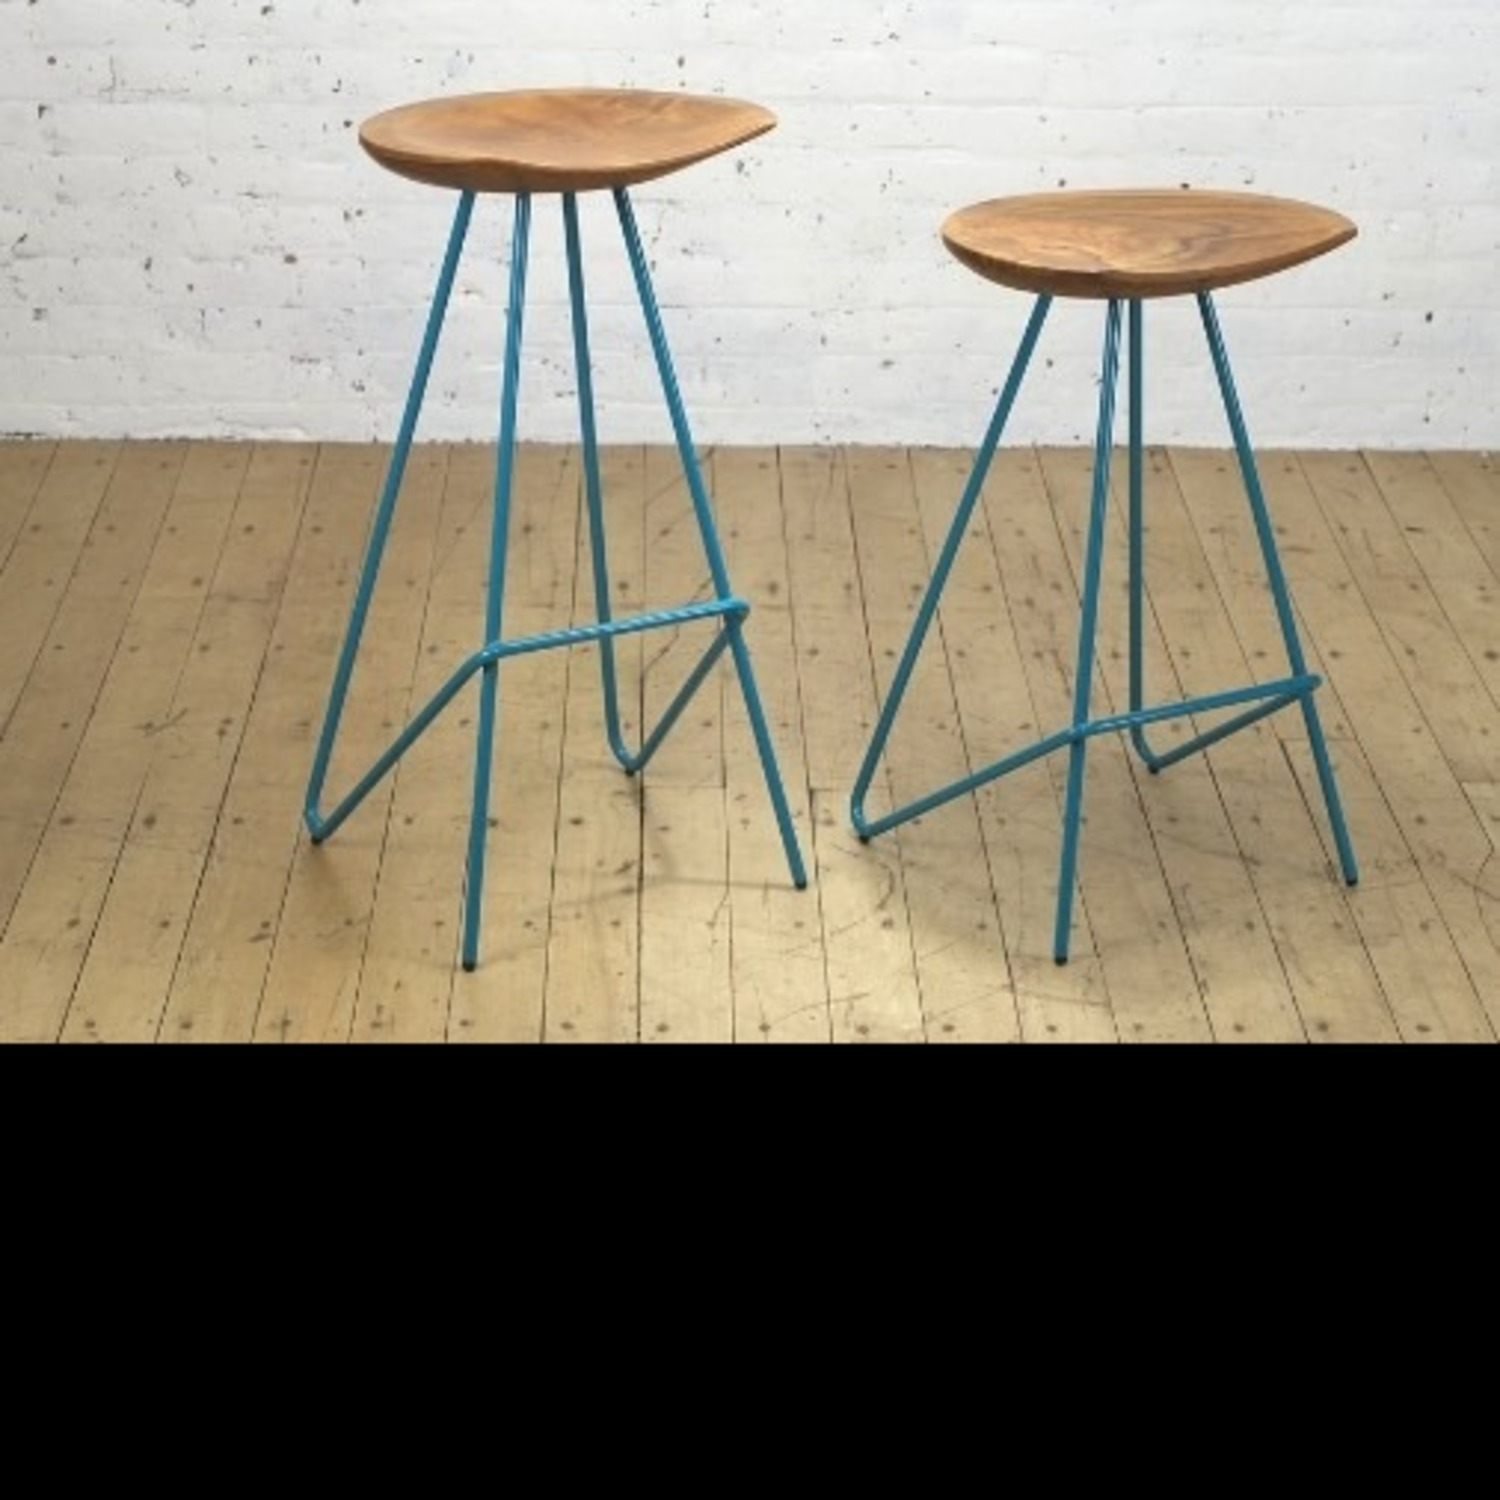 From The Source Perch Counter Stools - Set of 2 - image-10